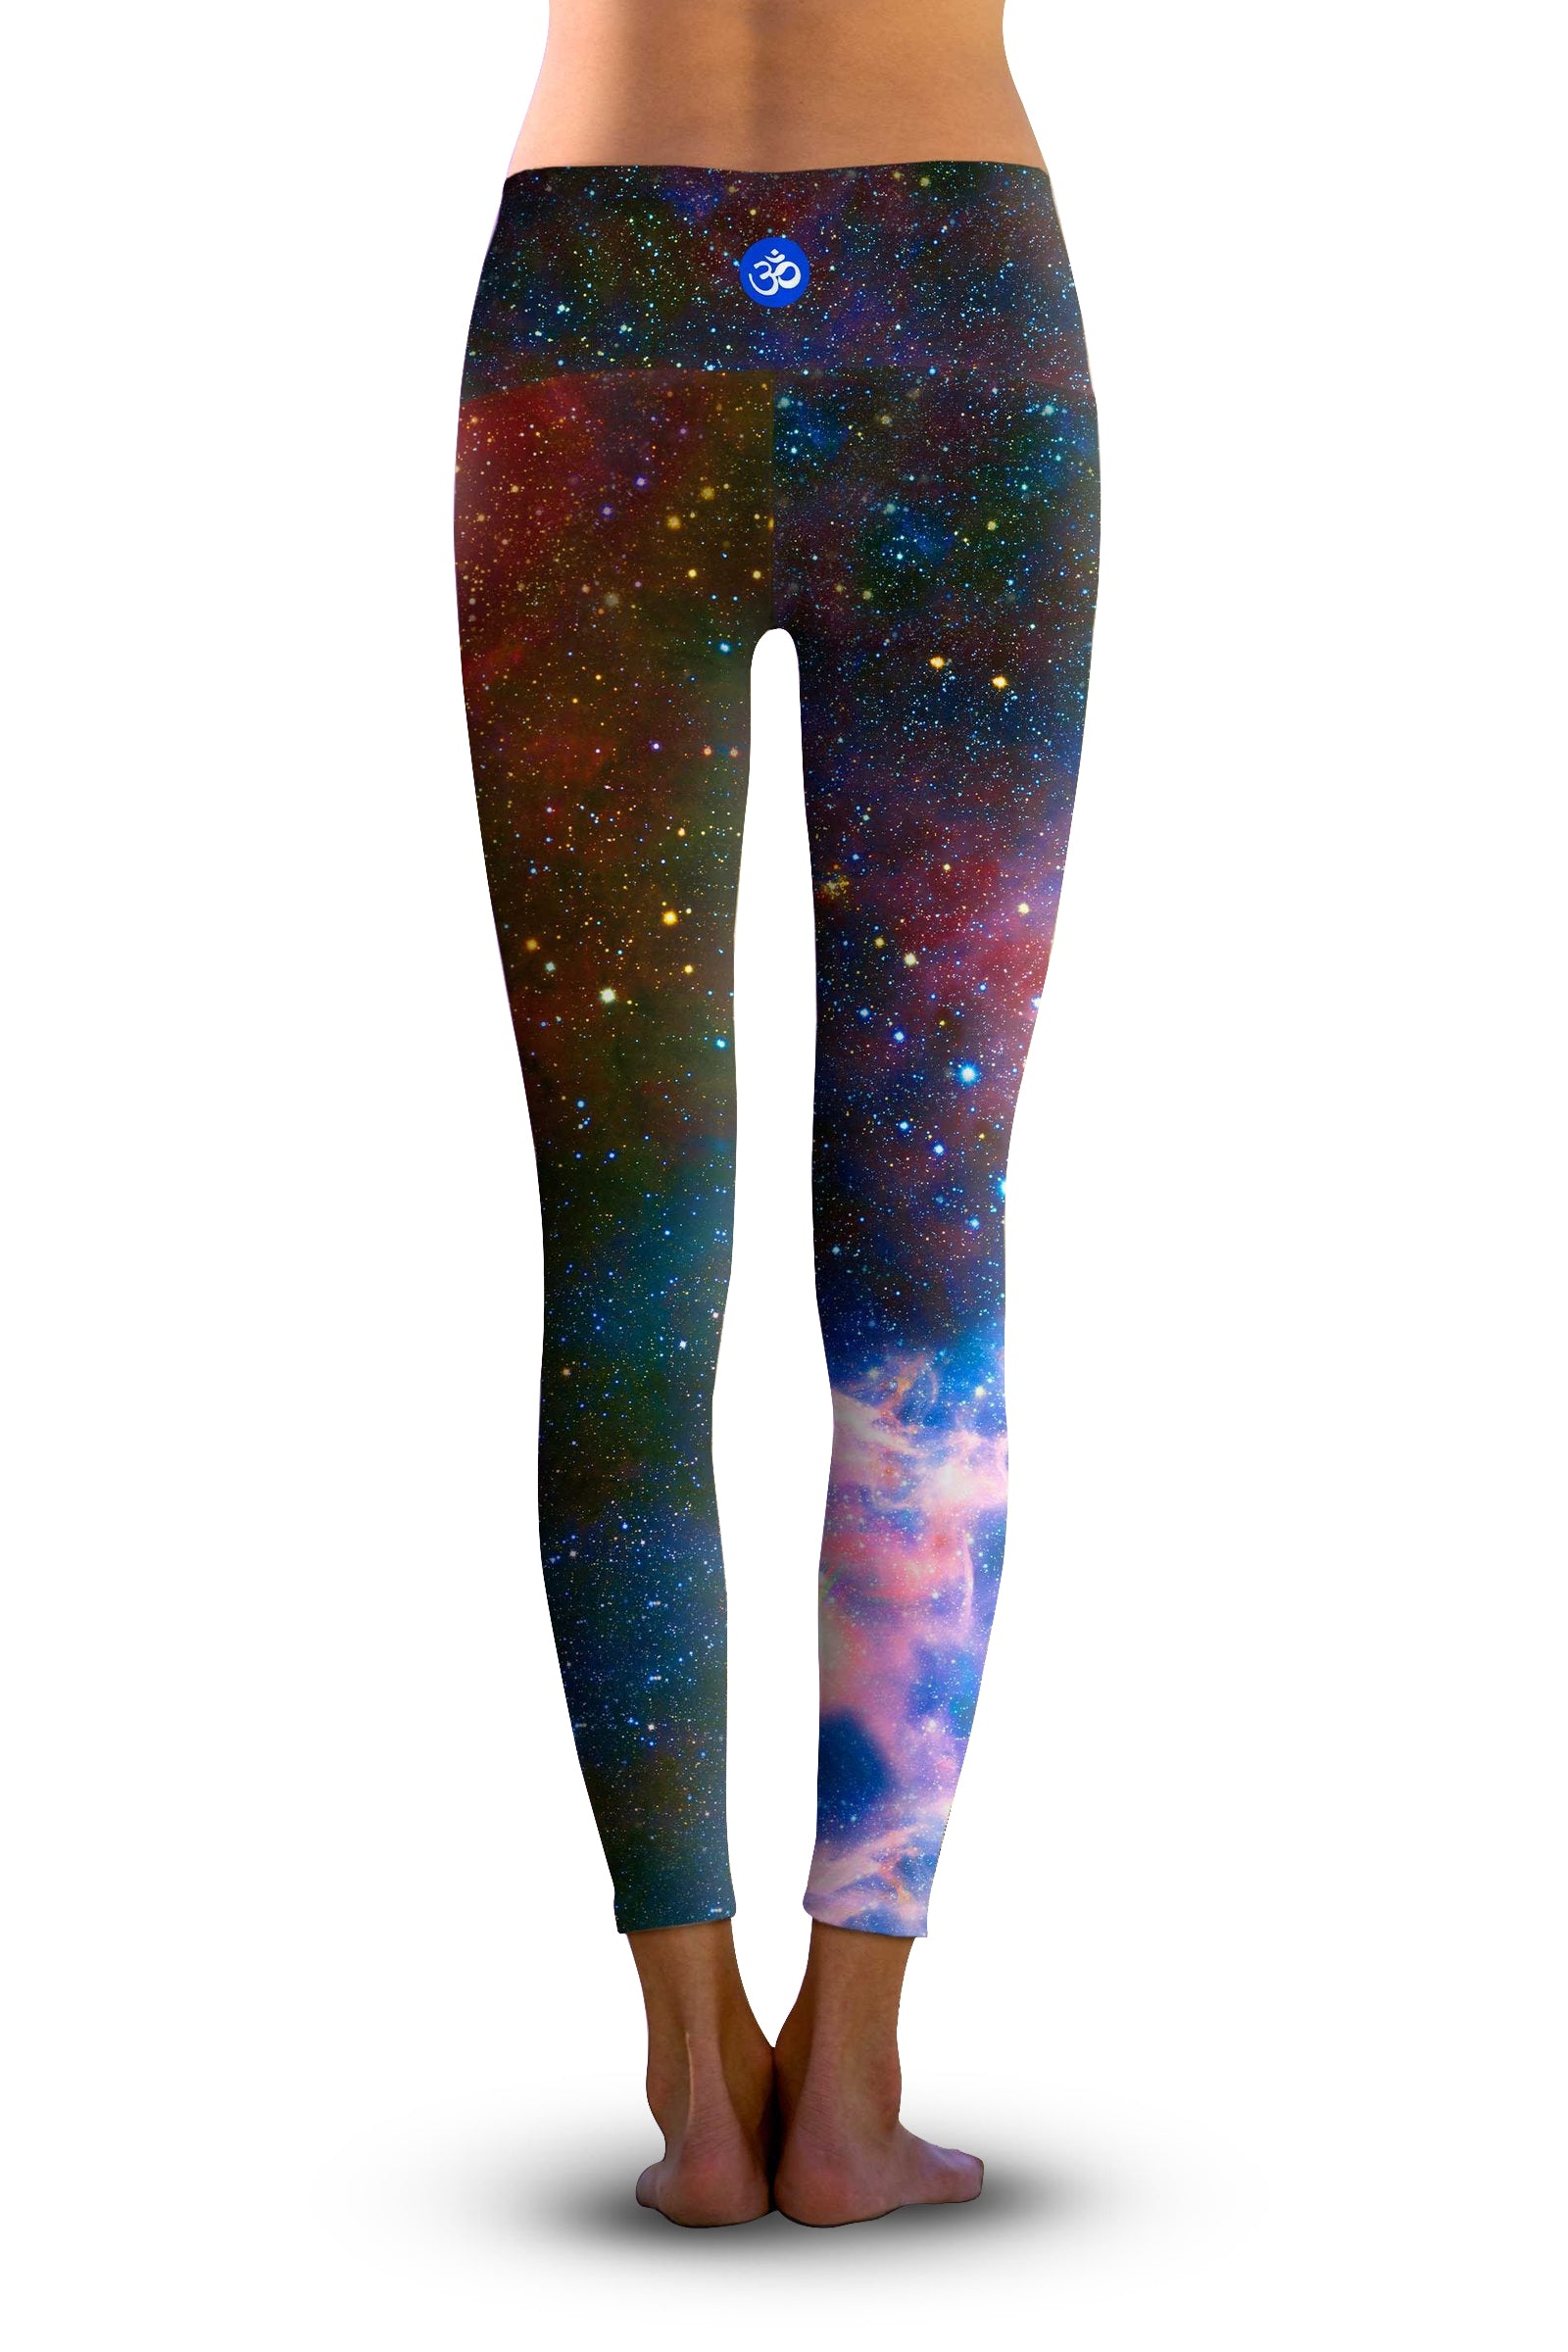 #Carina Nebula Space Galaxy, Eco-Friendly Active Performance Leggings